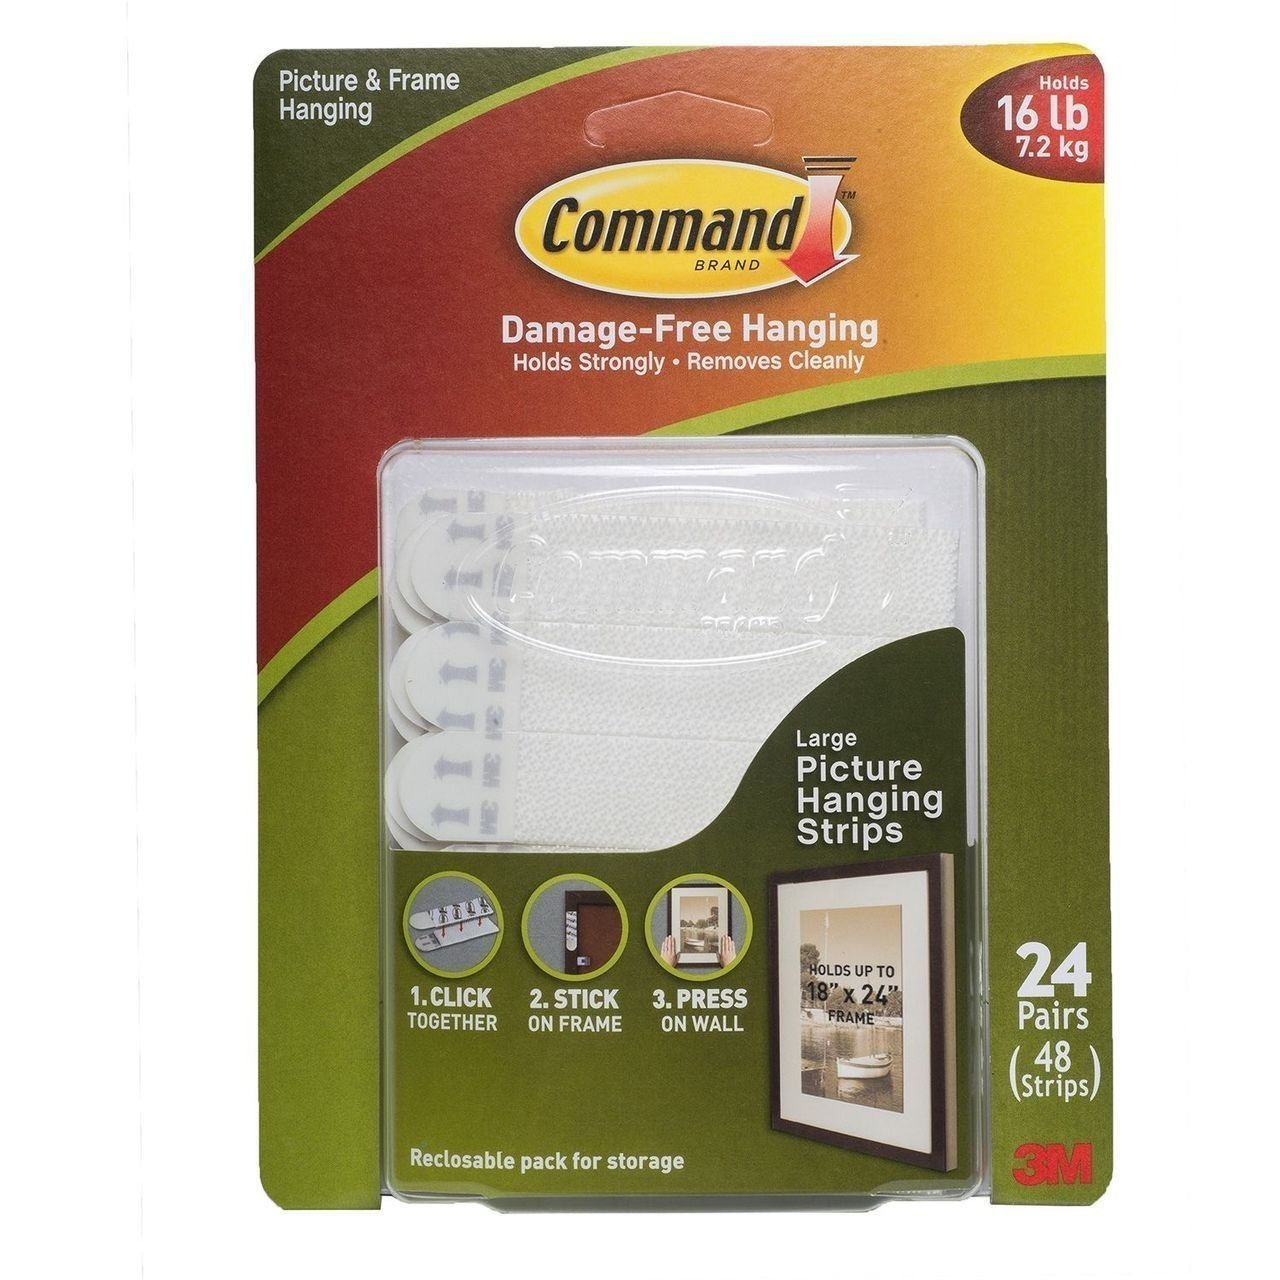 Amazoncom 3m 17206 Command Large Picture Hanging Strips 16 Lb 48